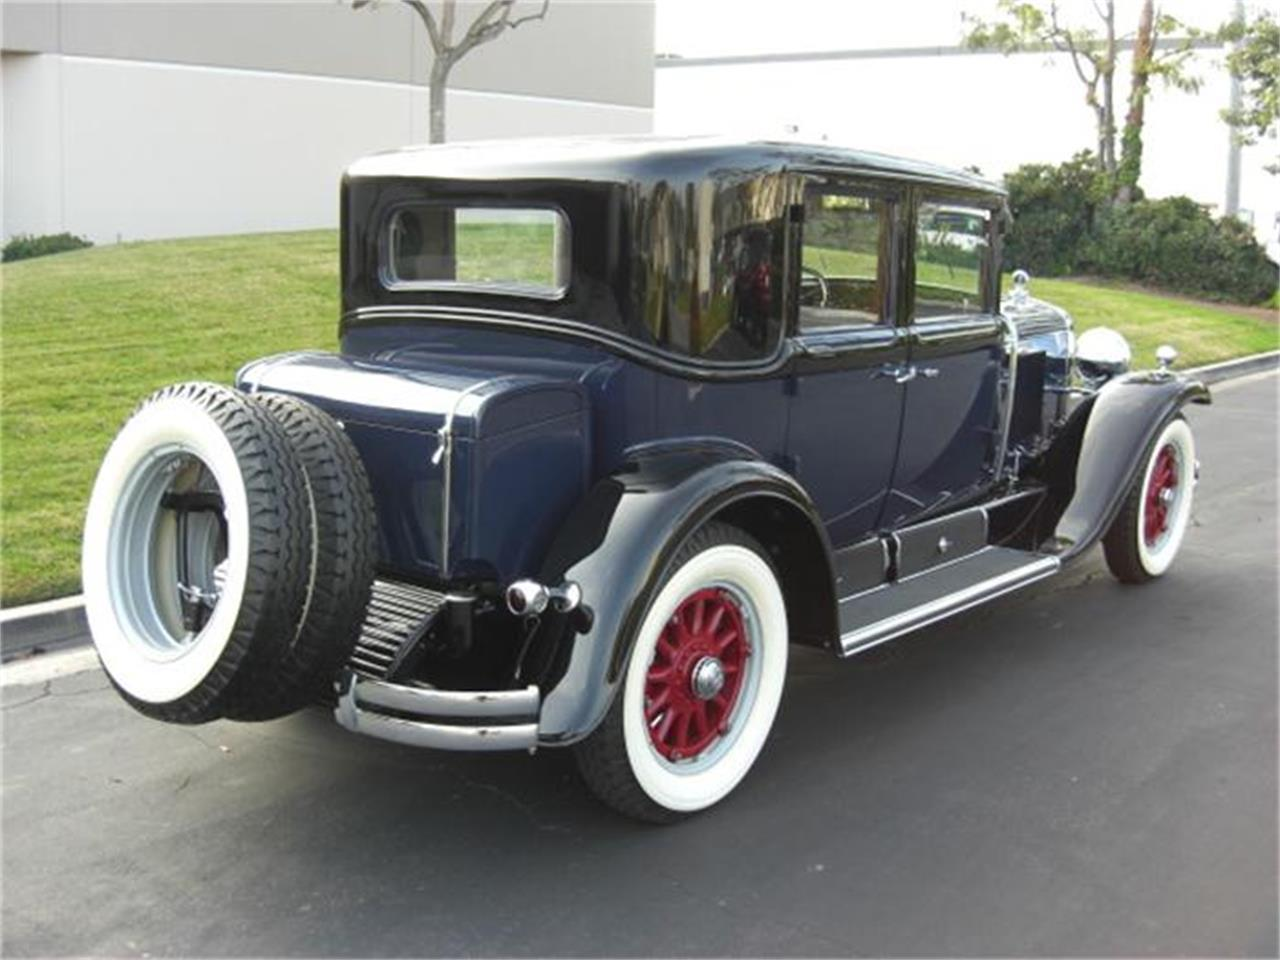 Large Picture of Classic 1929 Cadillac Sedan located in Costa Mesa California - $79,900.00 Offered by Crevier Classic Cars - 4HEP